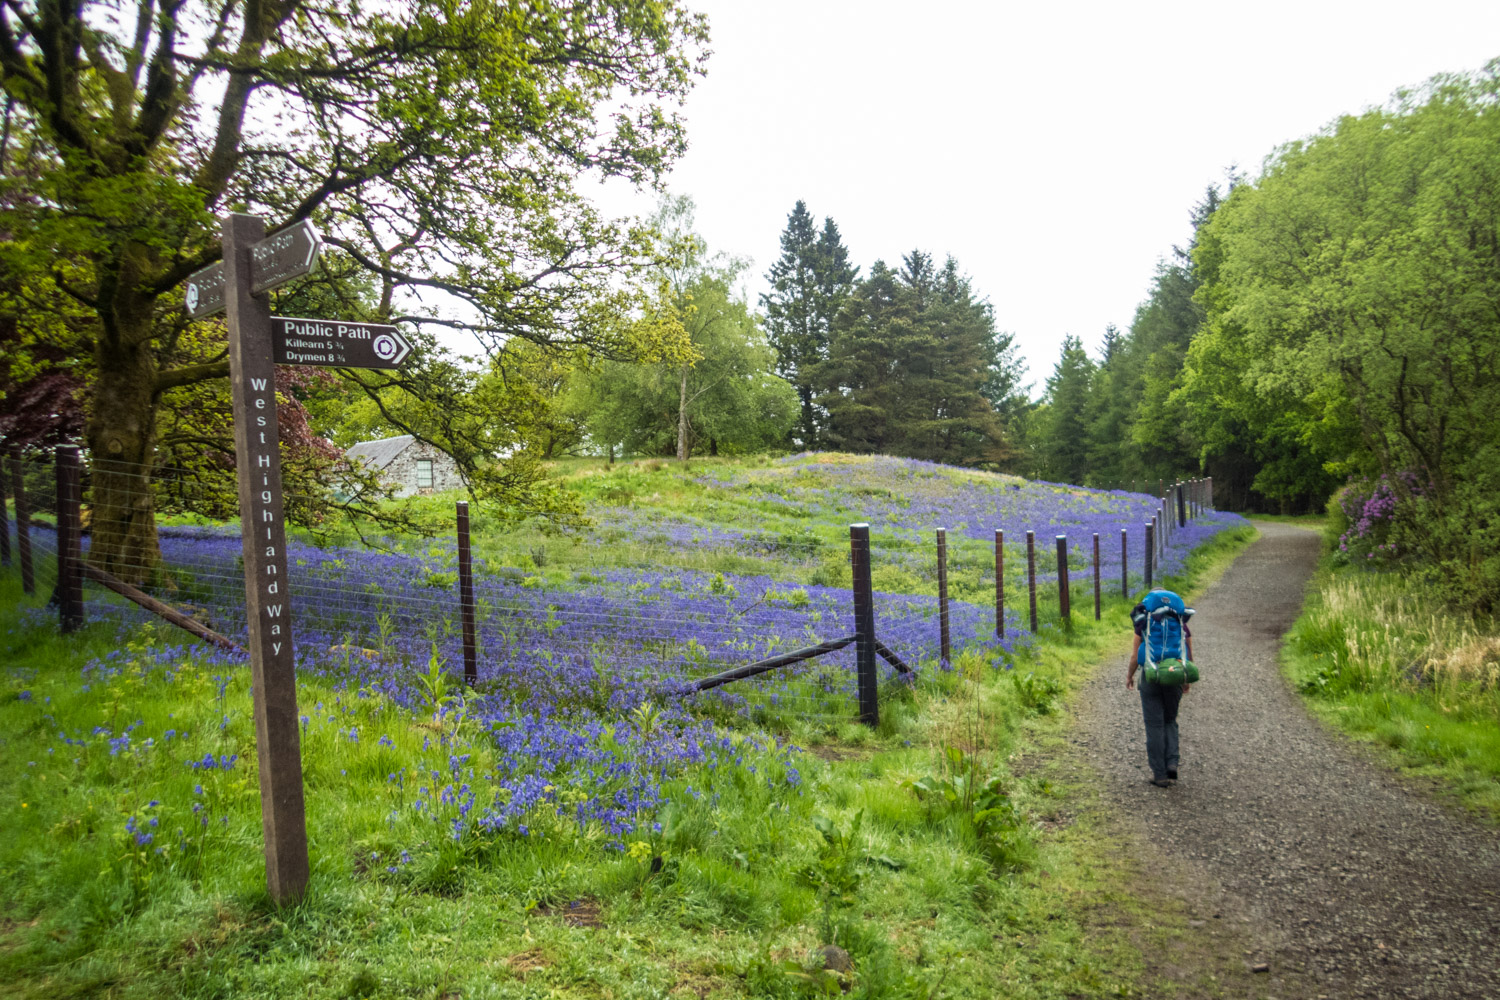 Dyan walking ahead as I stopped again to admire the bluebells.